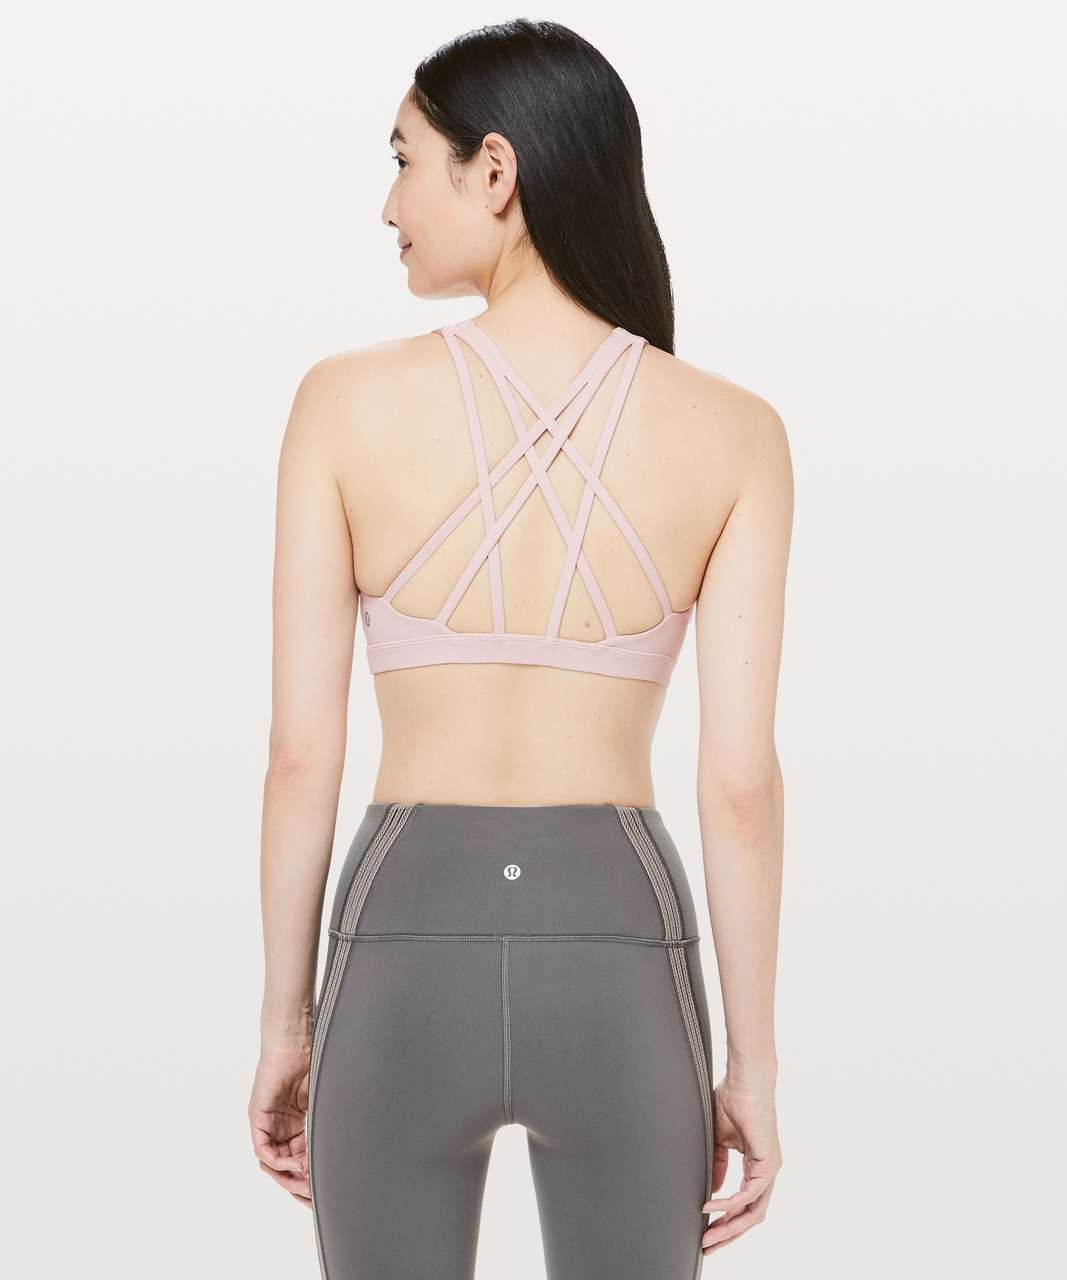 Lululemon Free To Be Serene Bra *High Neck - Pink Bliss